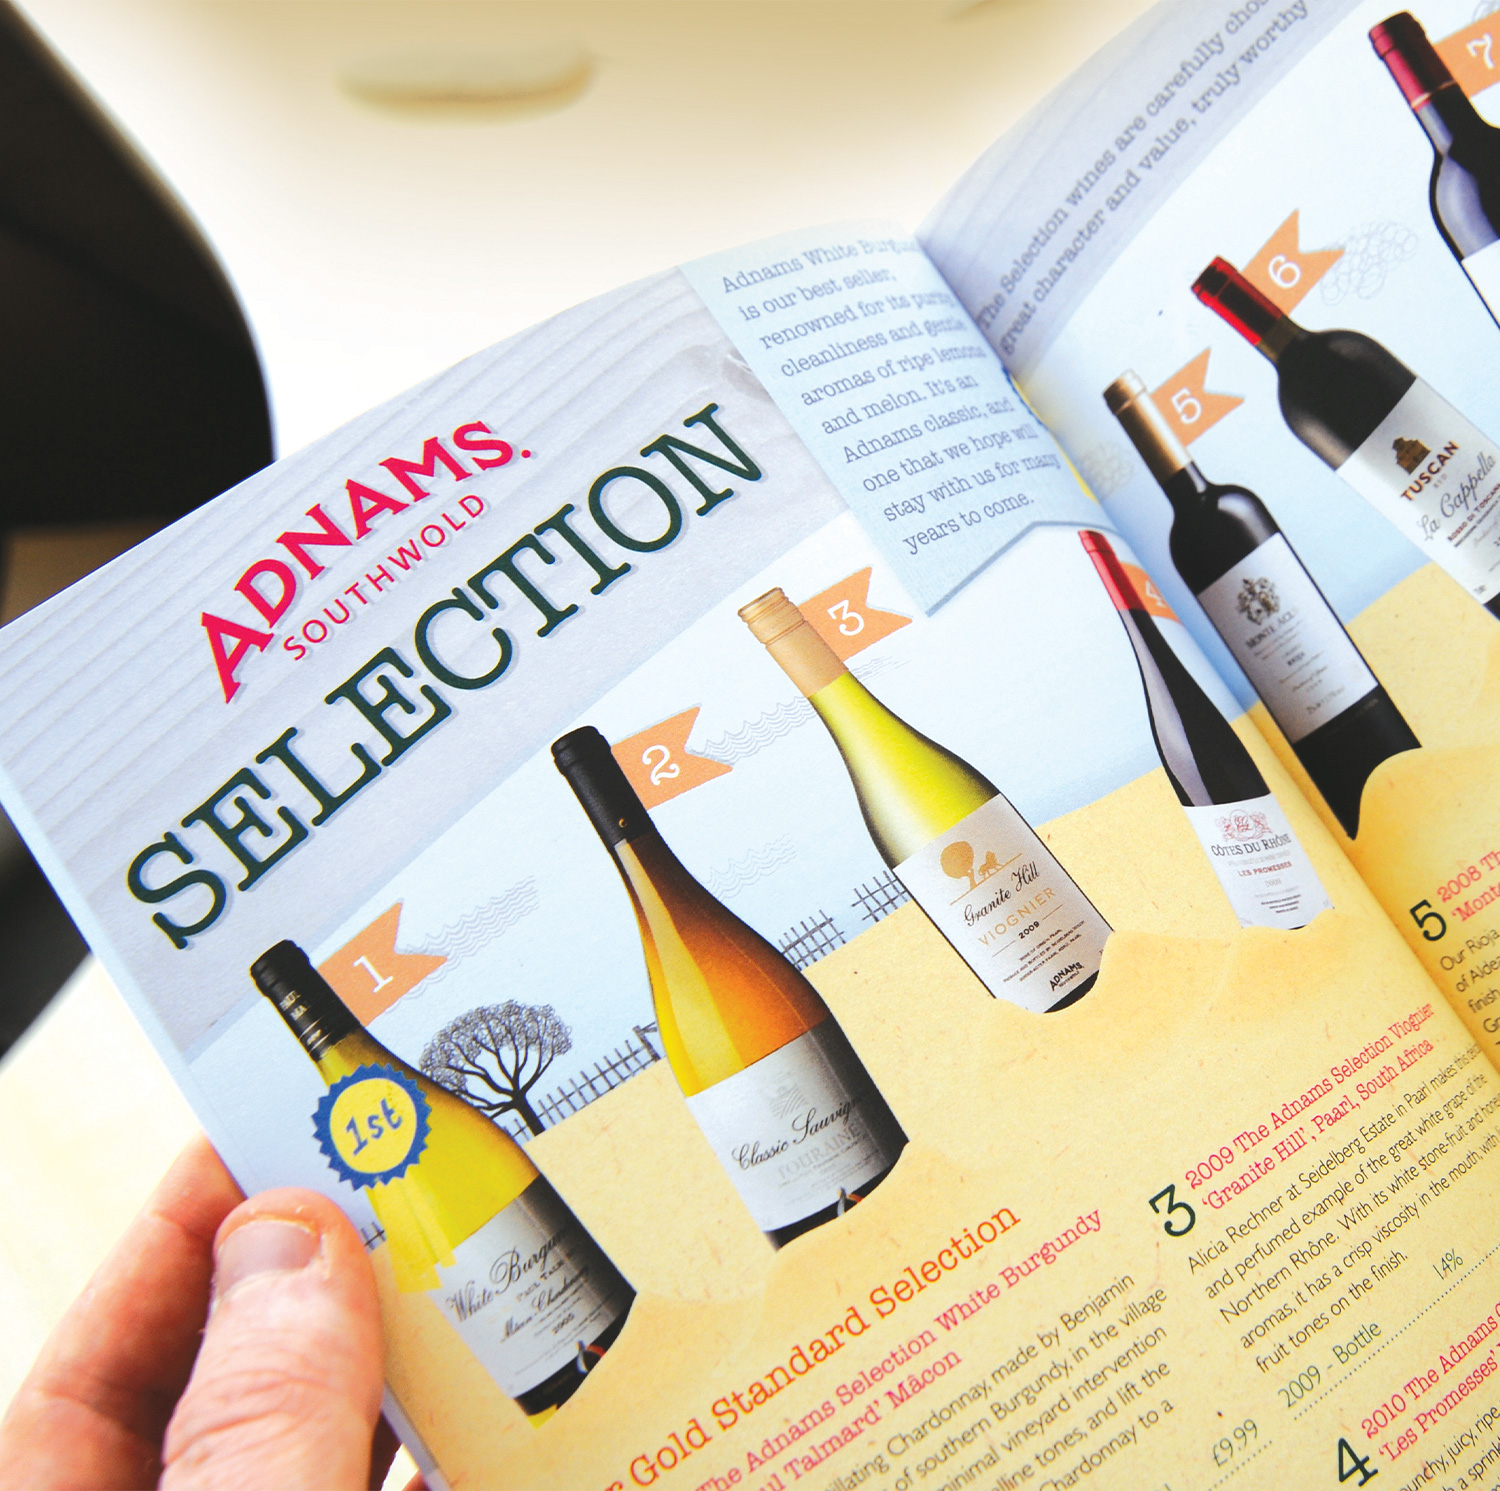 Adnams winebook browsing